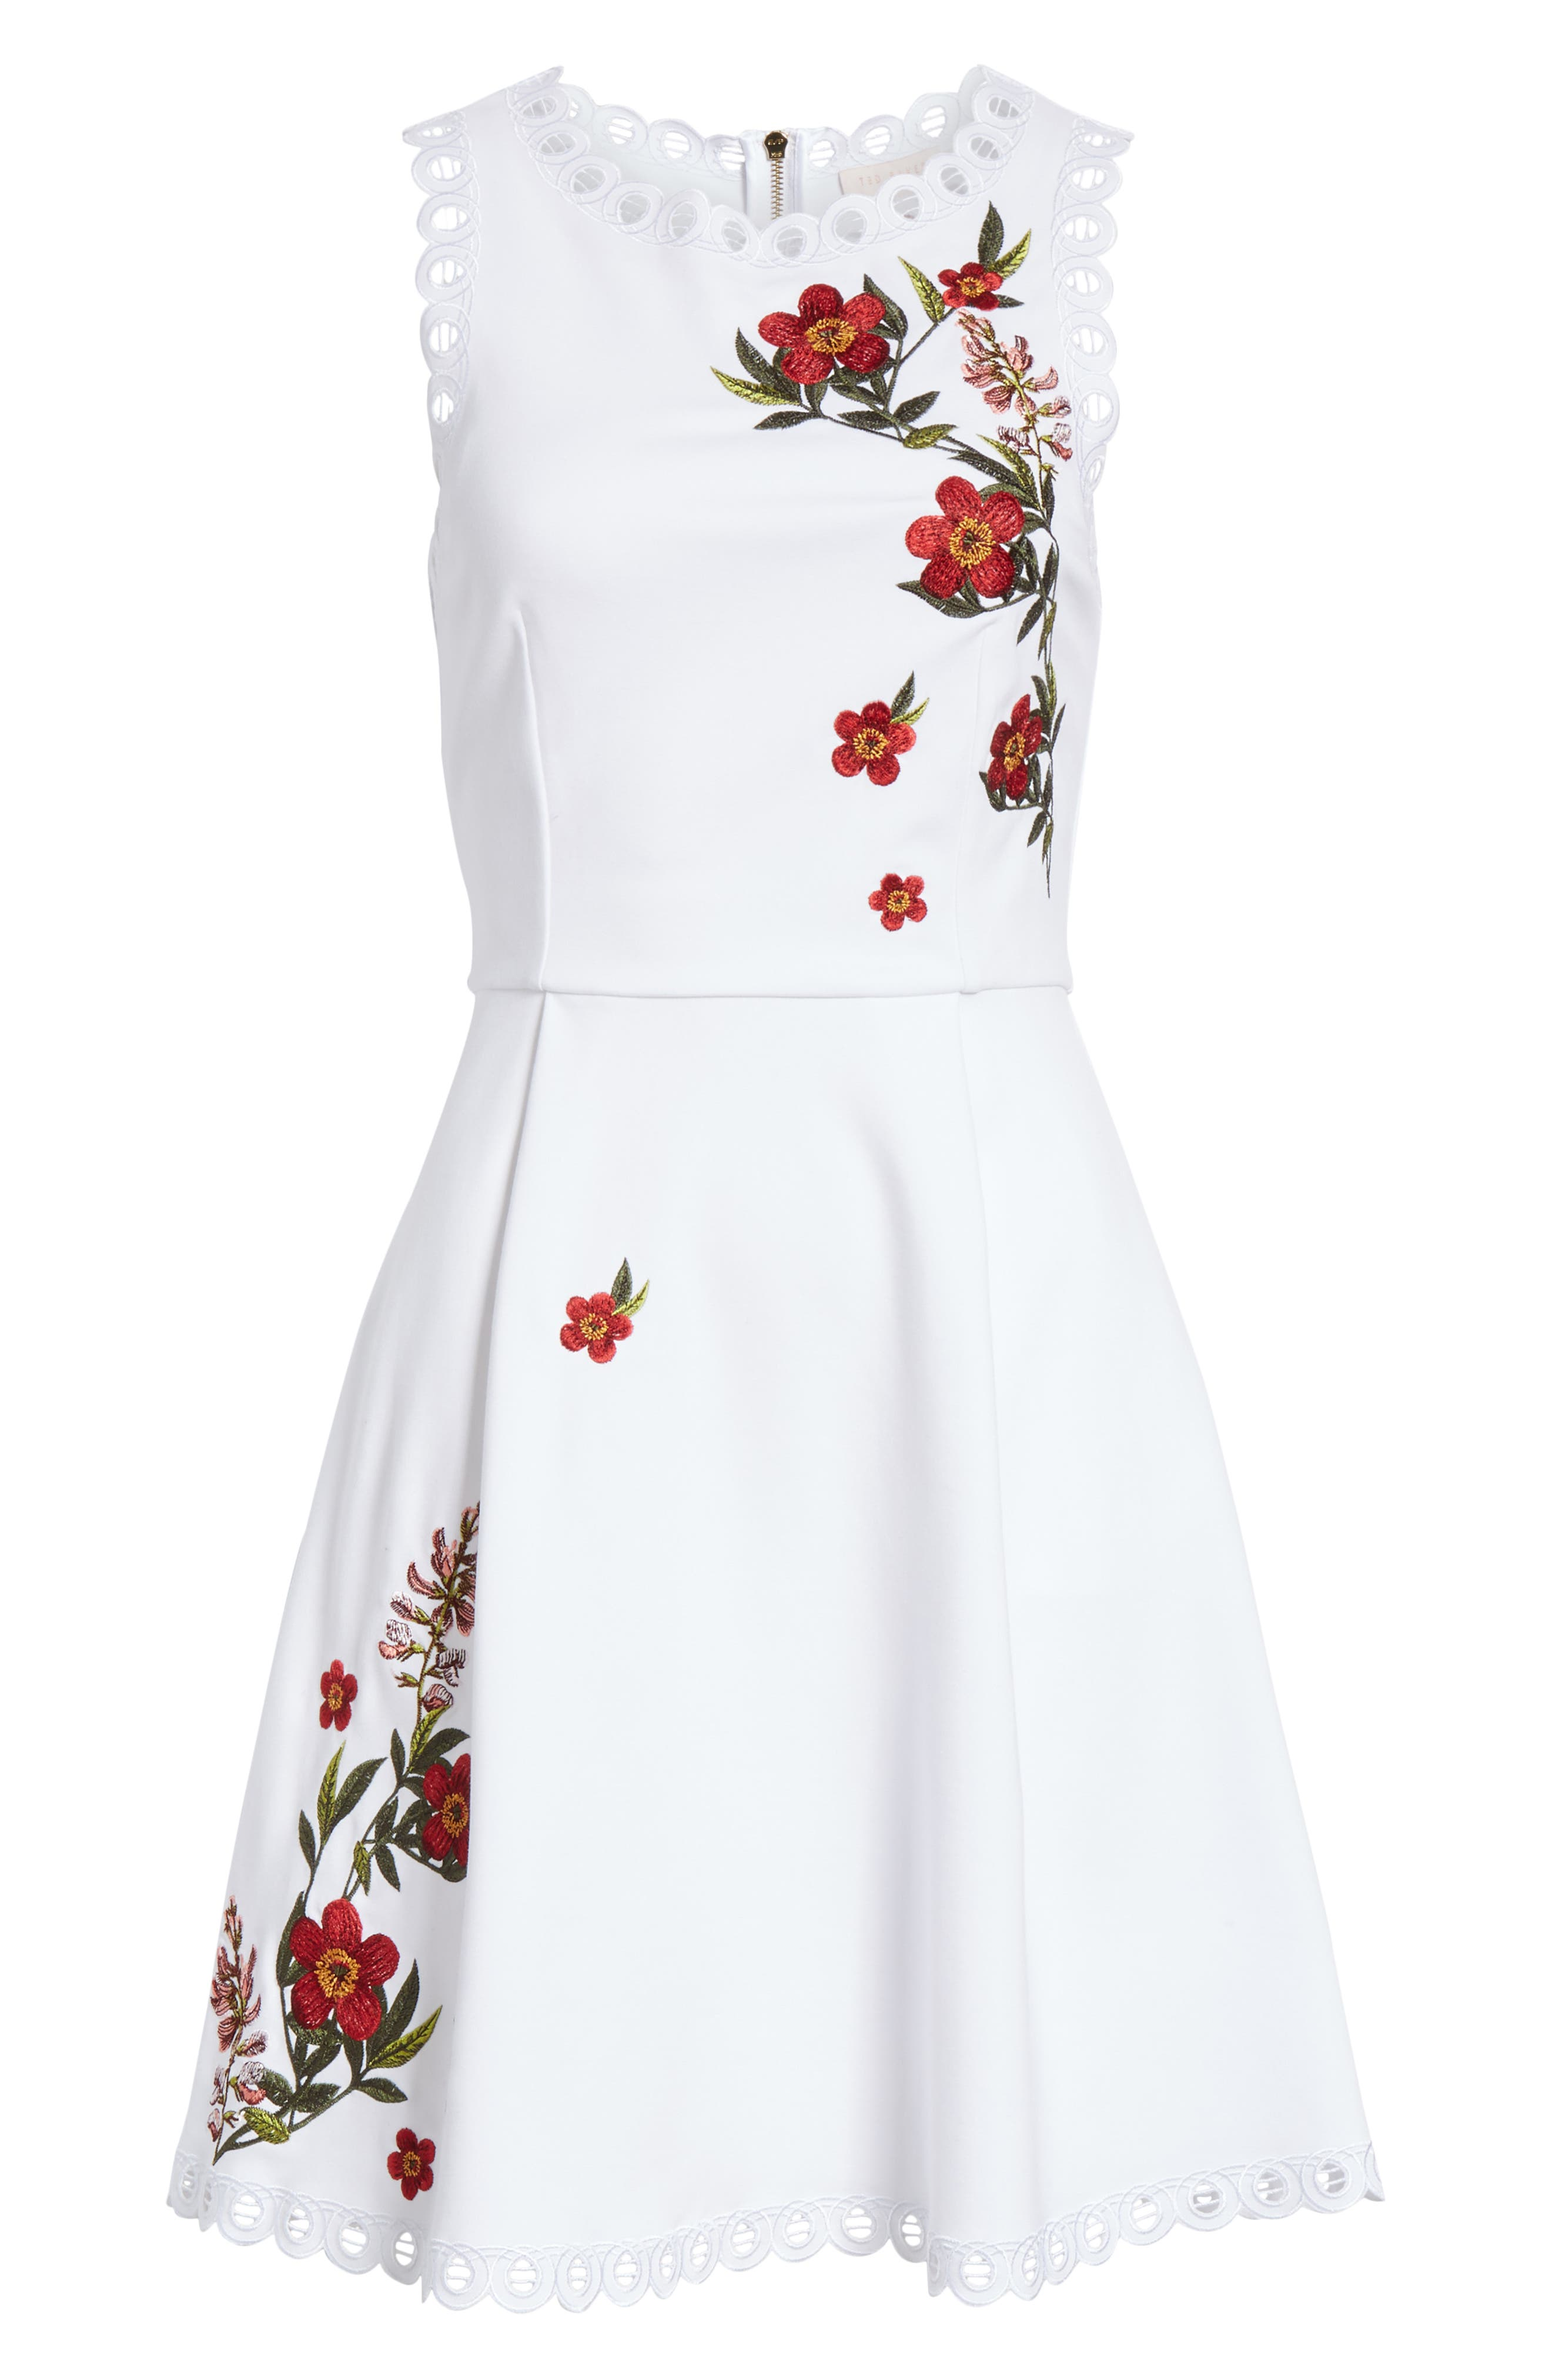 Kristil Kirstenbosch Skater Dress,                             Alternate thumbnail 6, color,                             WHITE